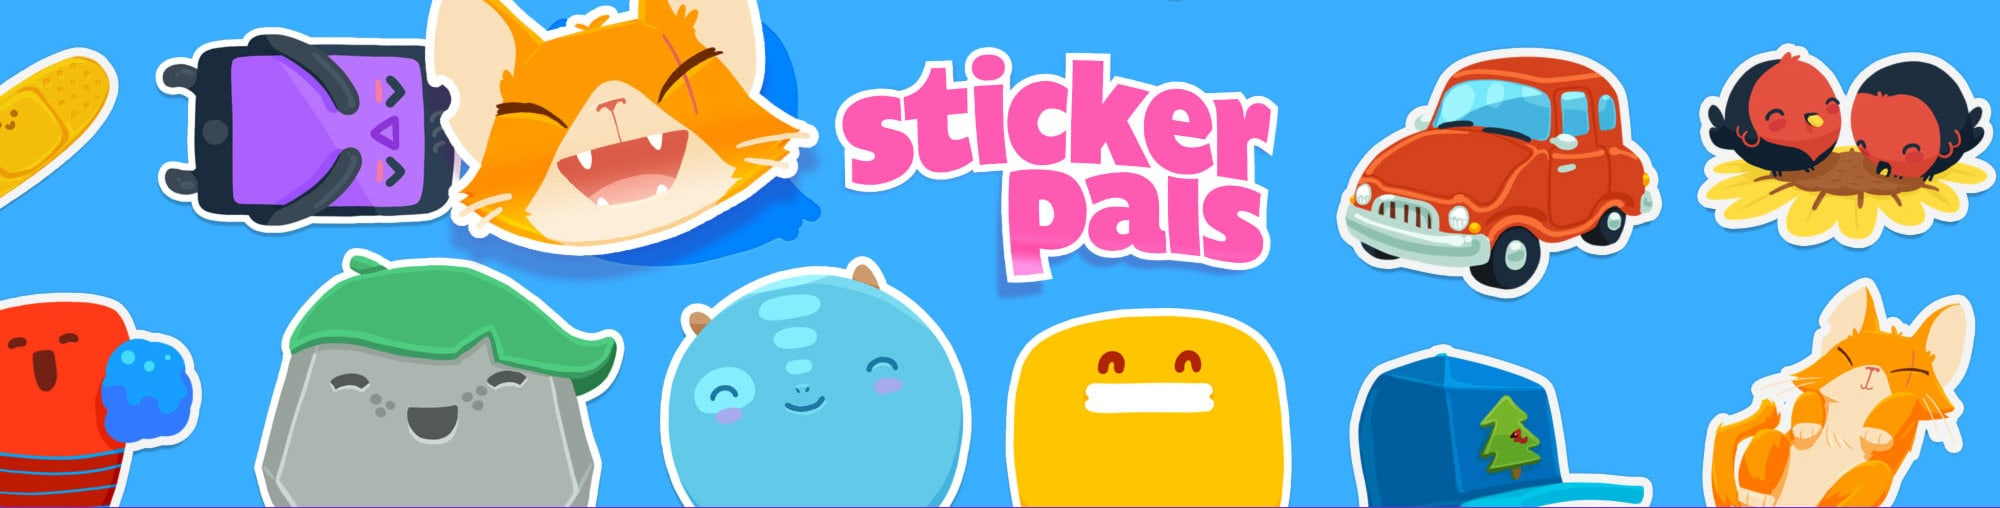 Sticker Pals